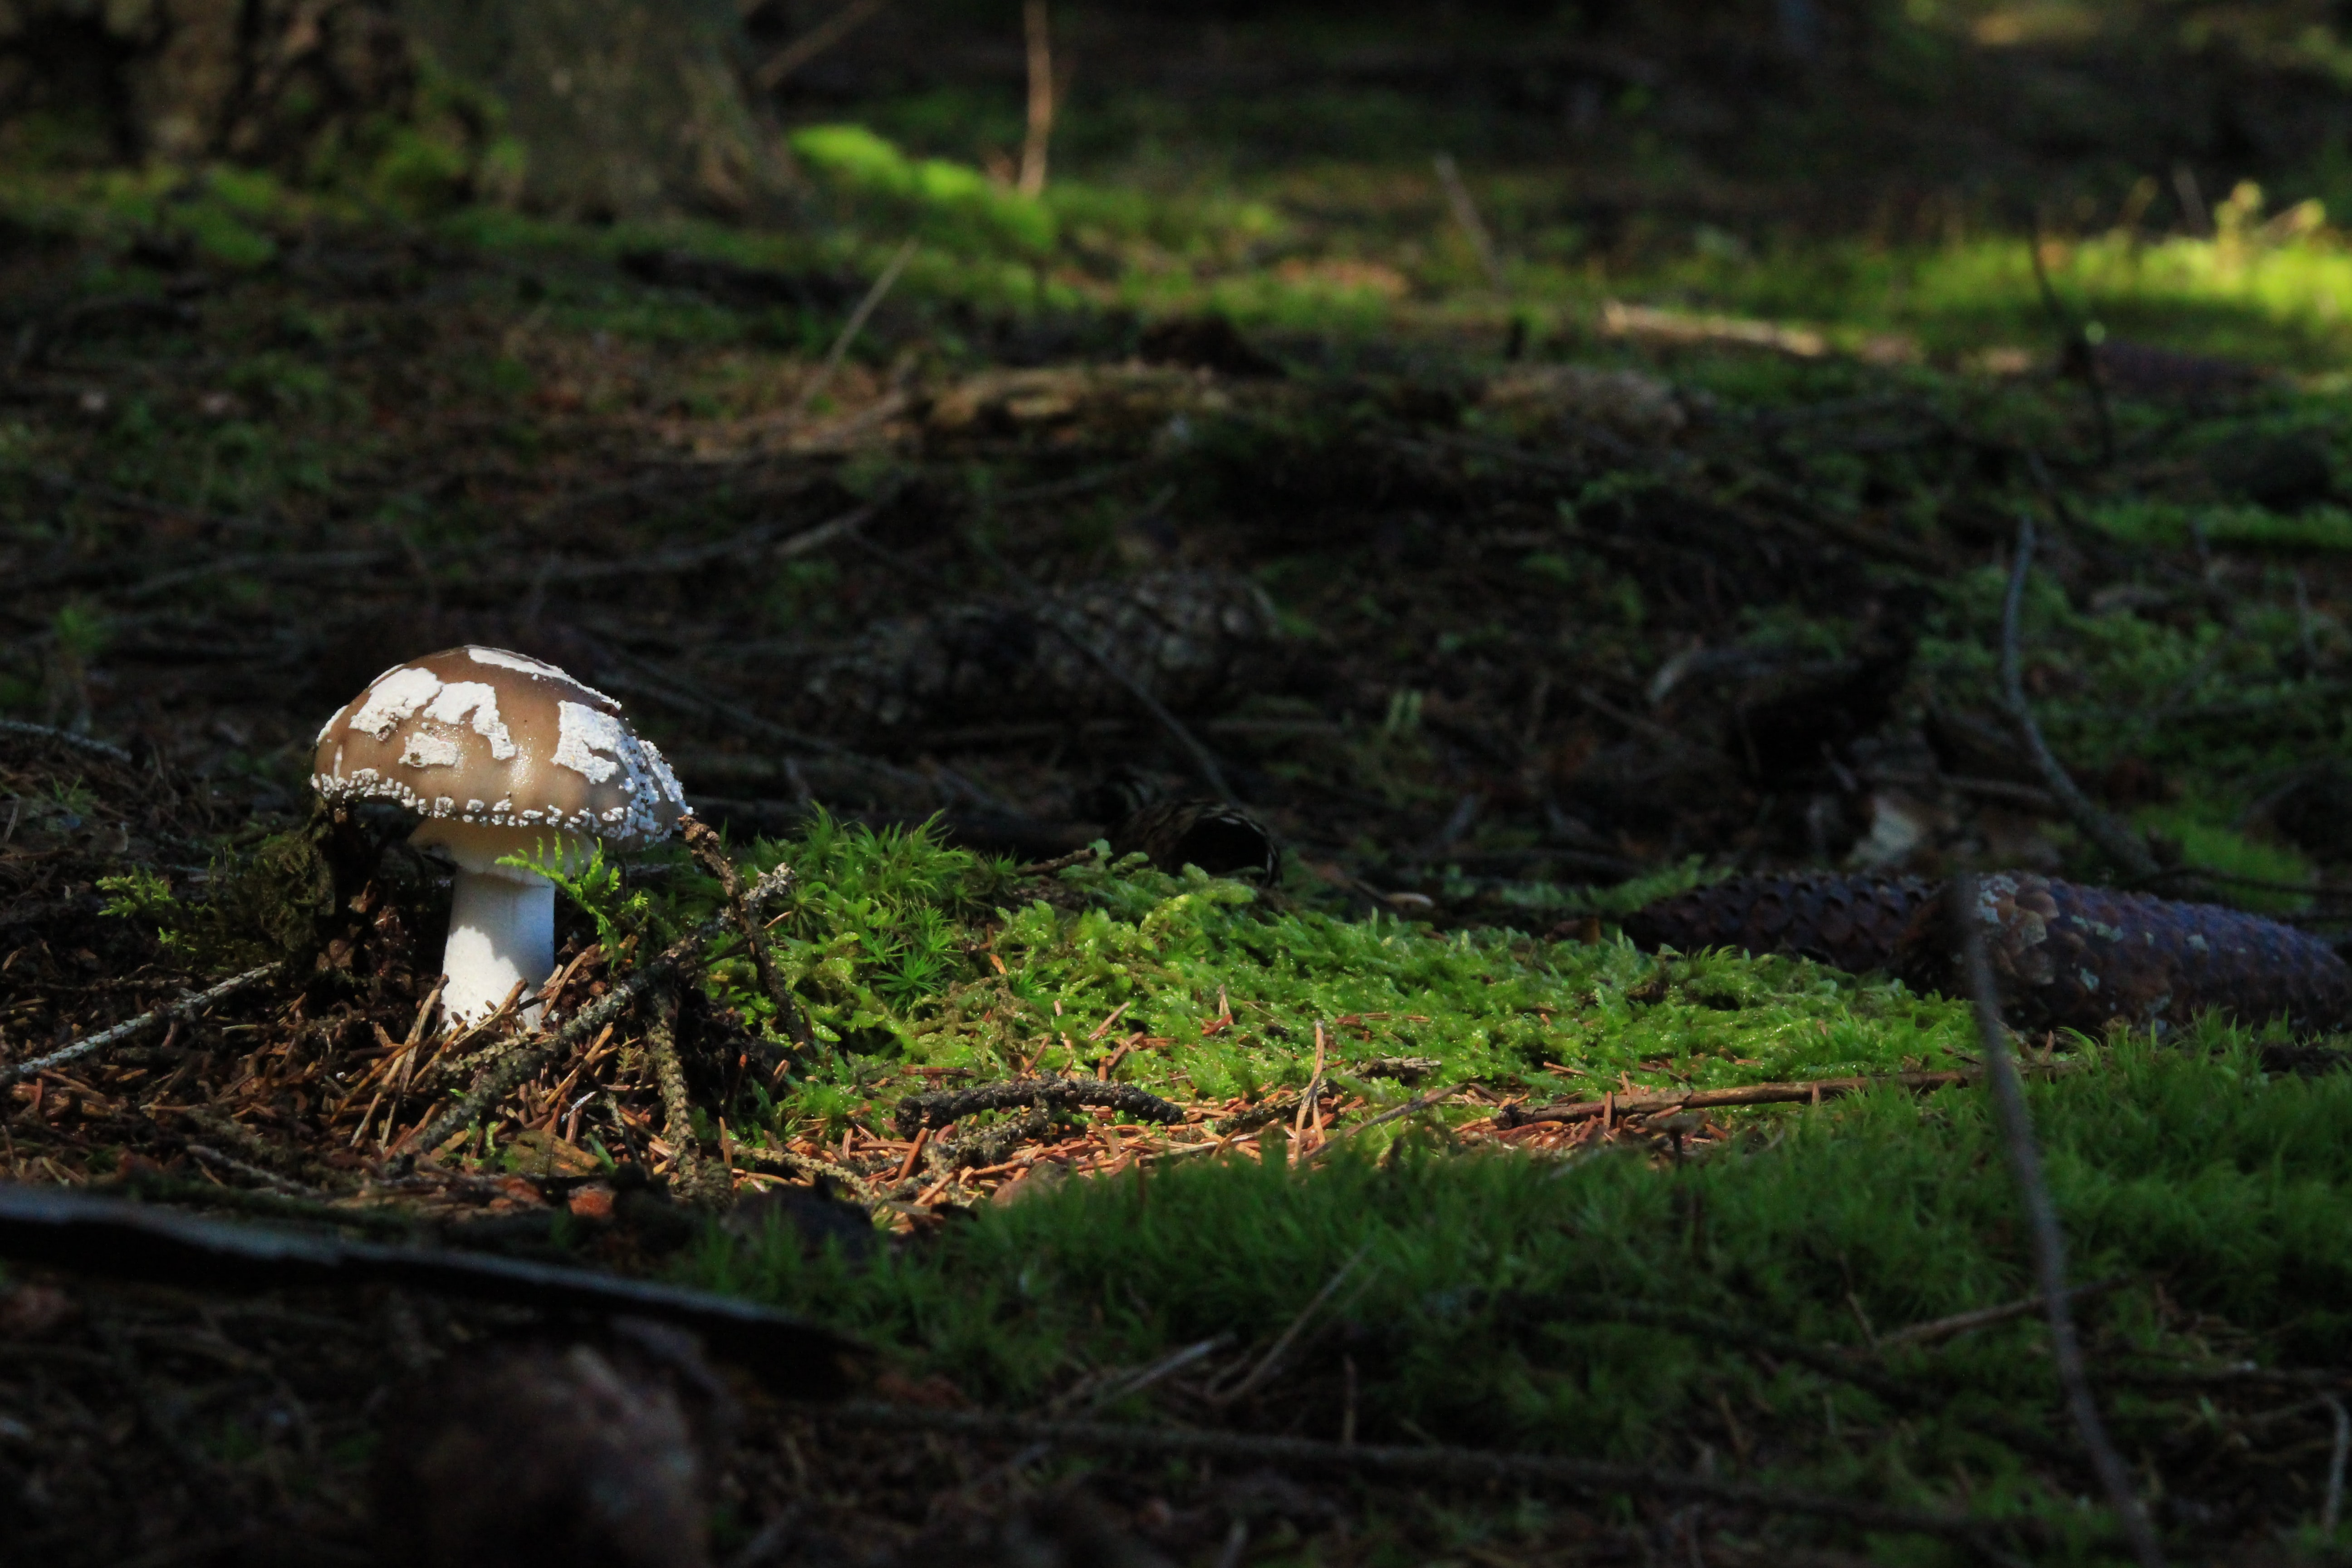 A mushroom with white spores on it illuminated by the sun in a shaded forest undergrowth littered by pinecones